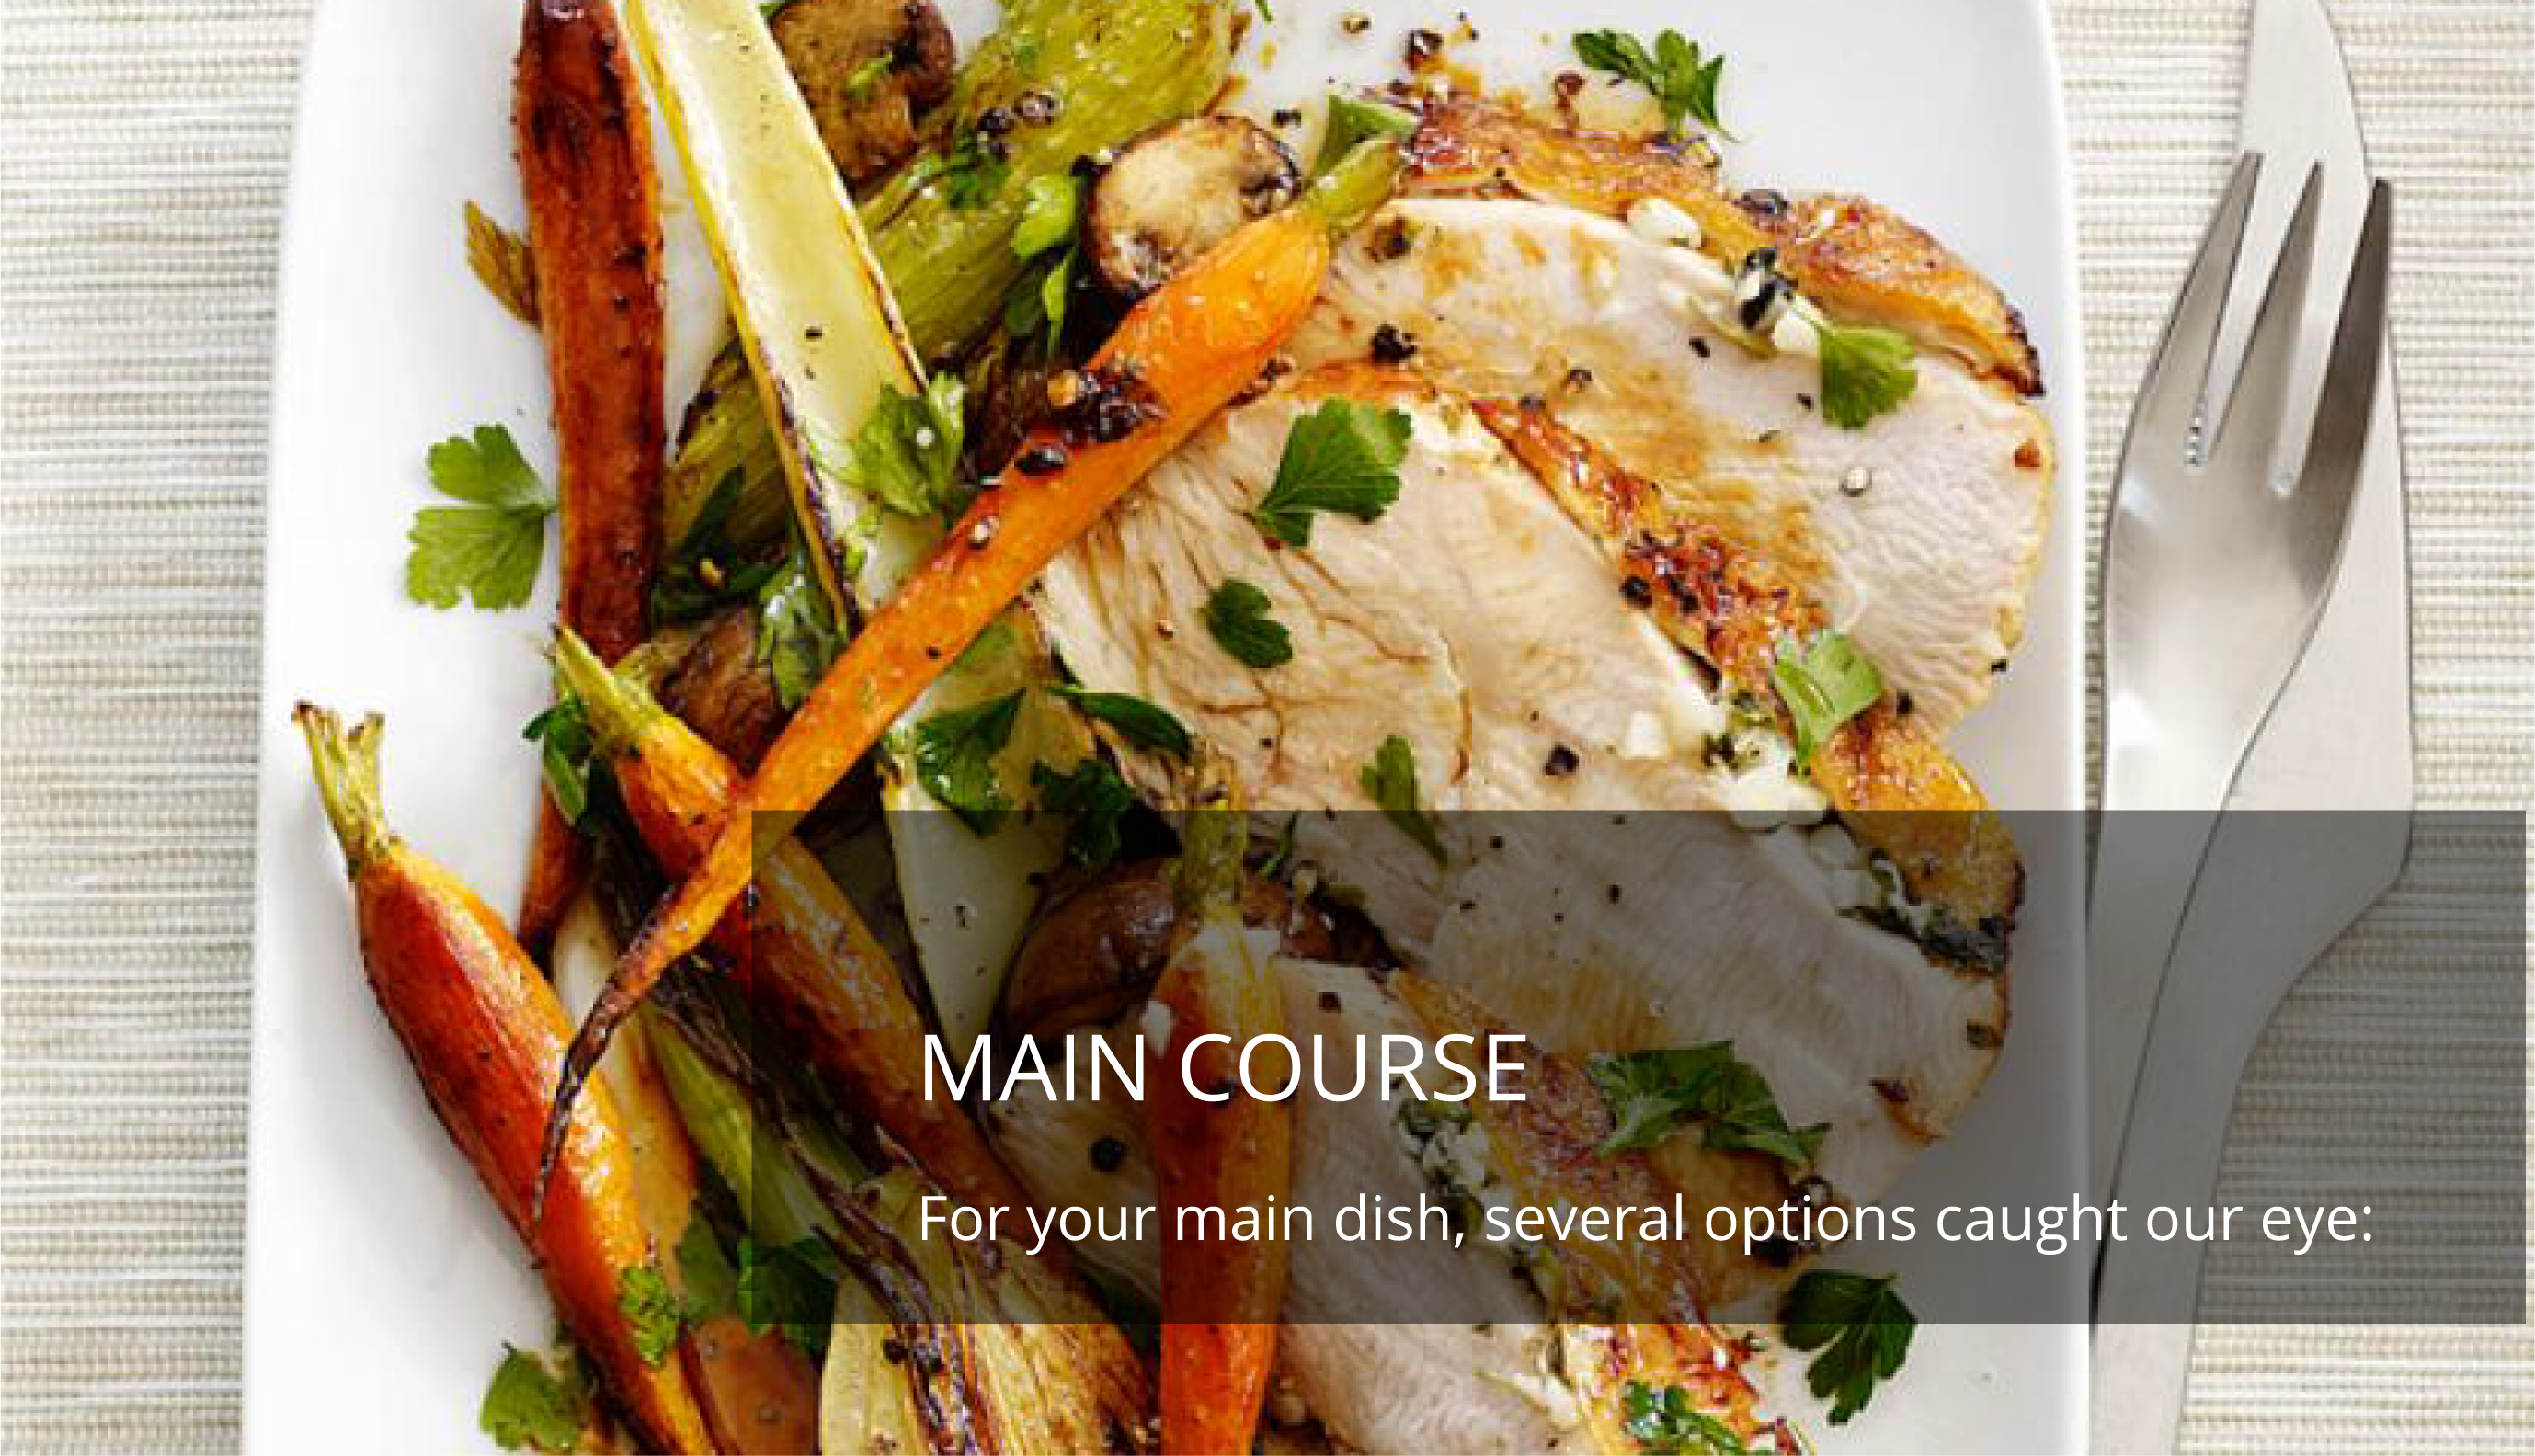 For your main course several options caught our eye: Turkey